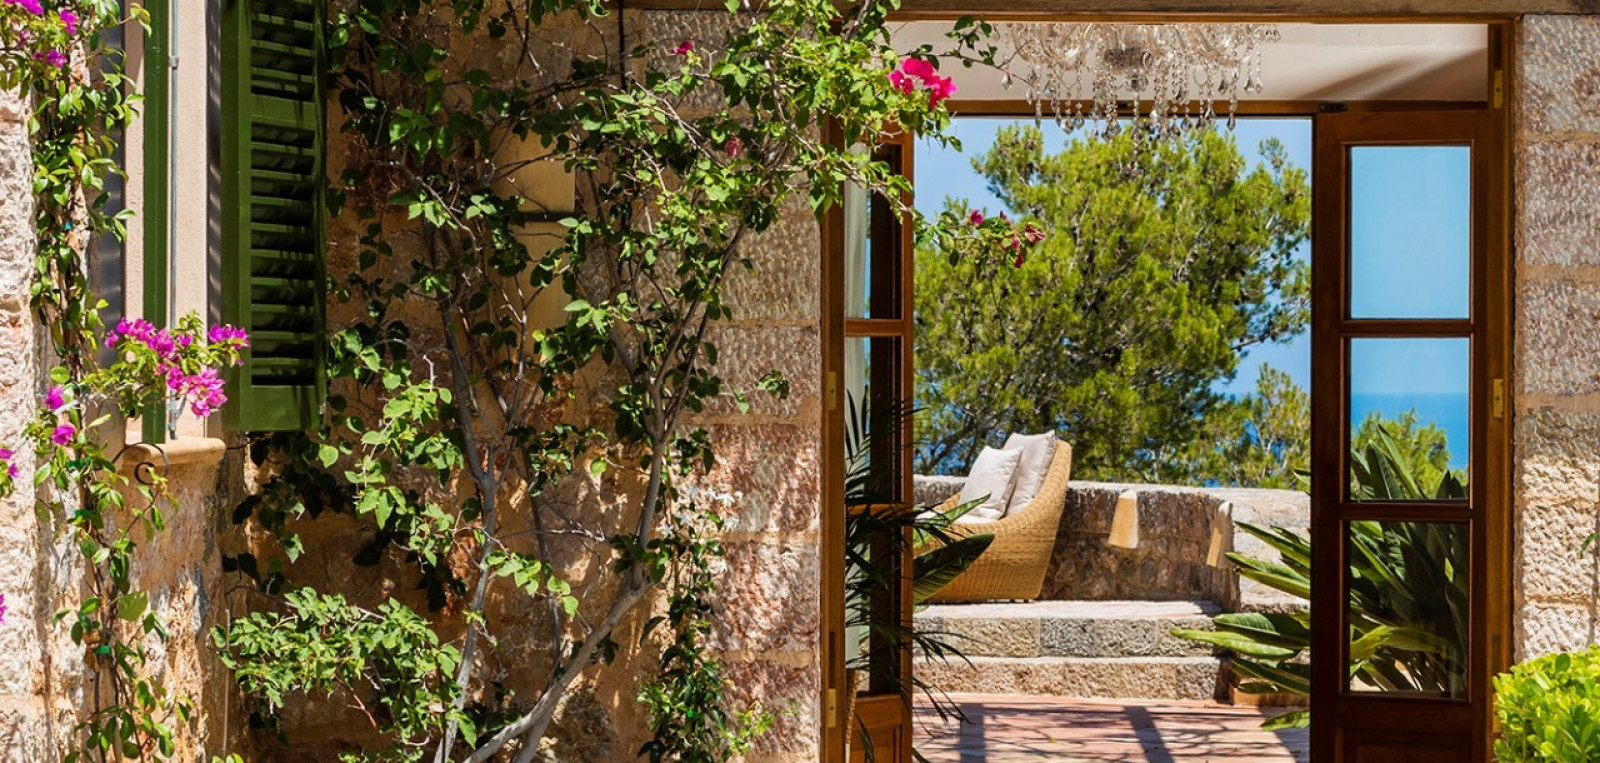 5 Bedroom Villa In Mallorca